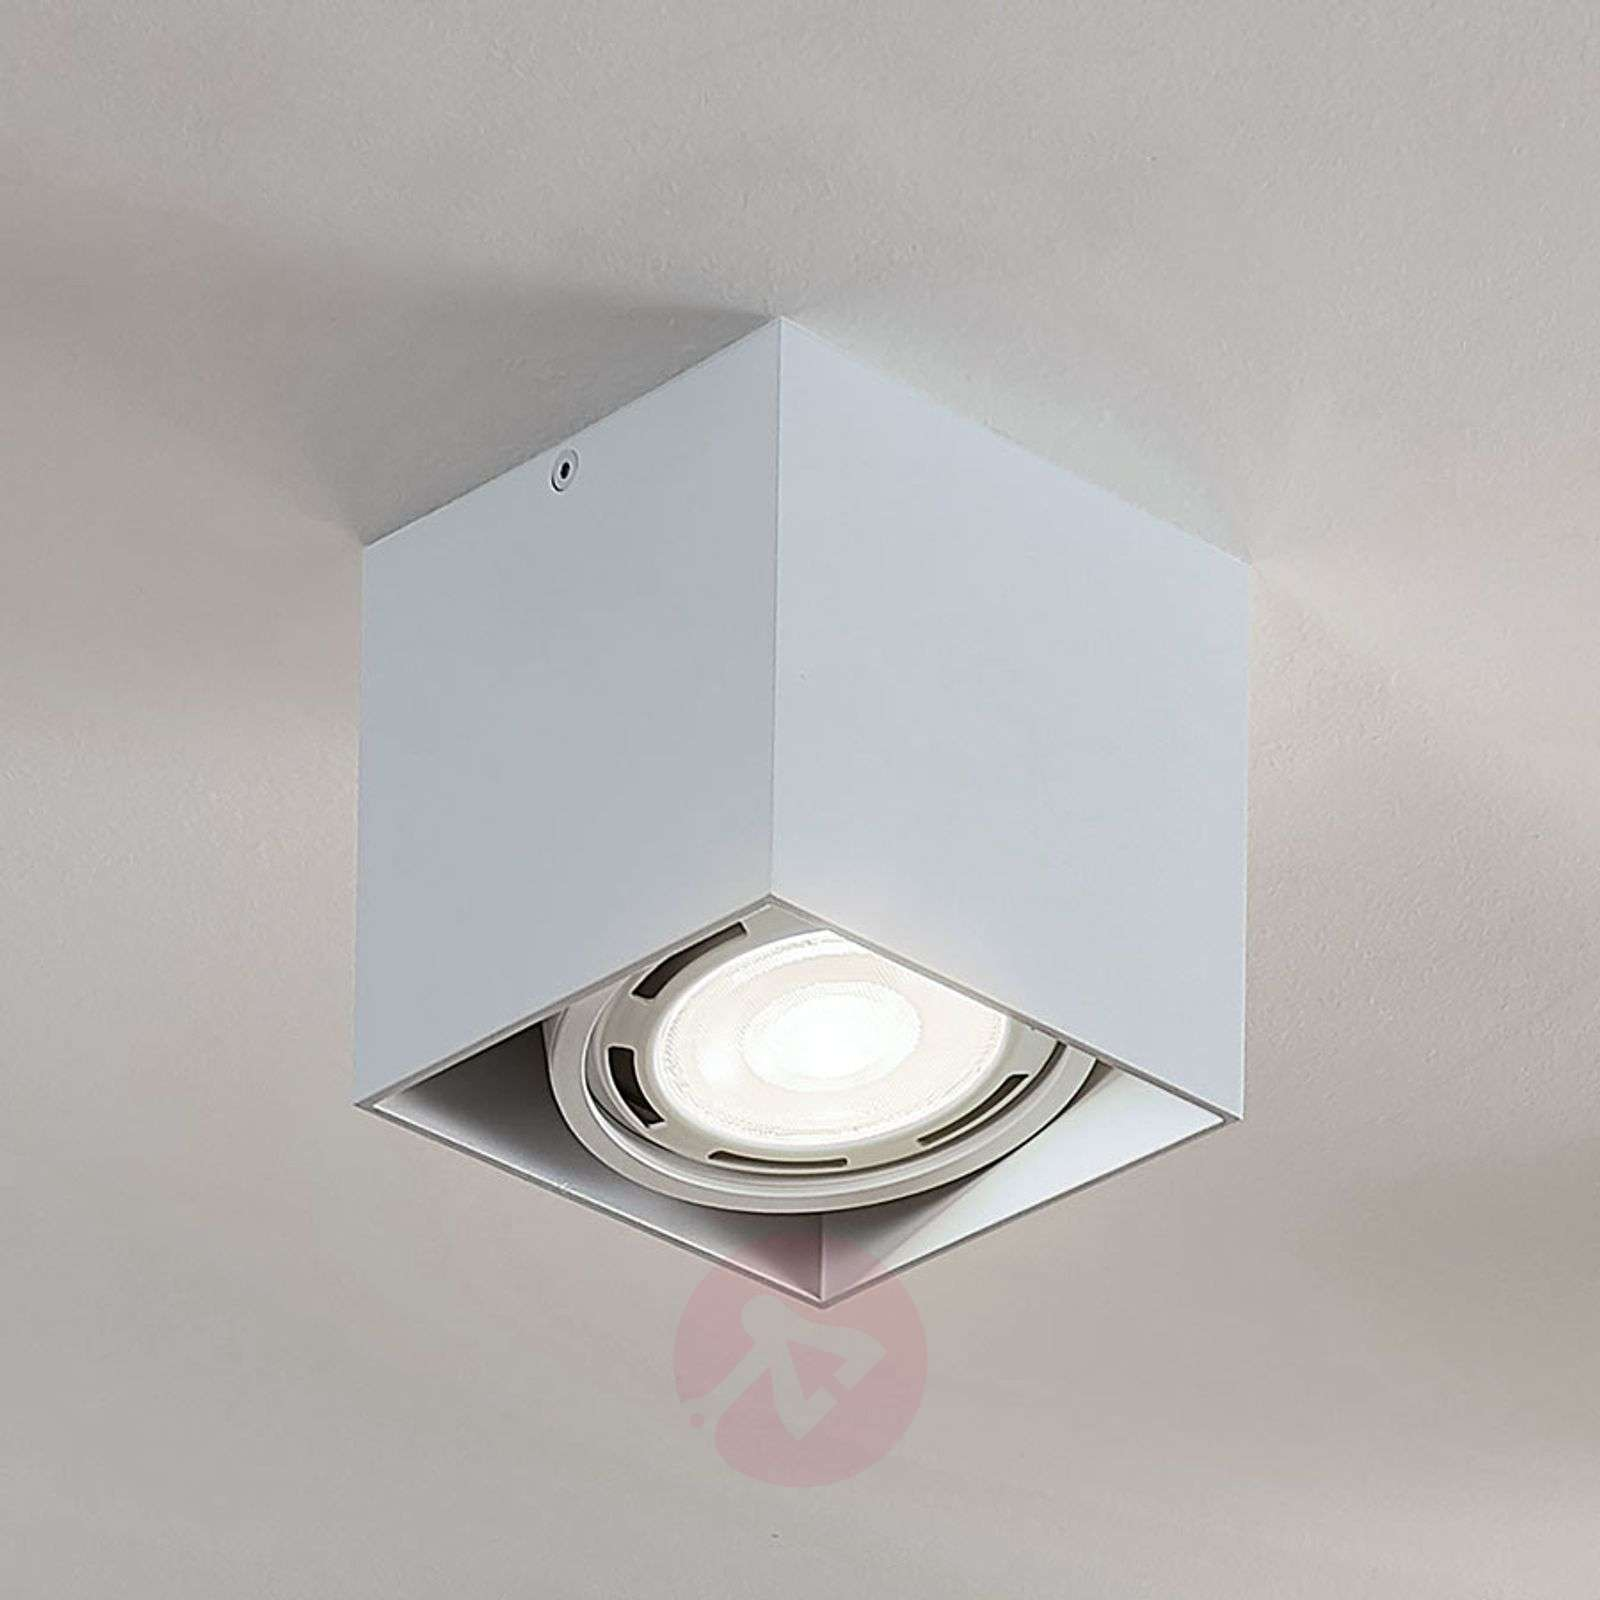 Downlight LED Rosalie, atenuable, 1 luz, blanco-9621907-02